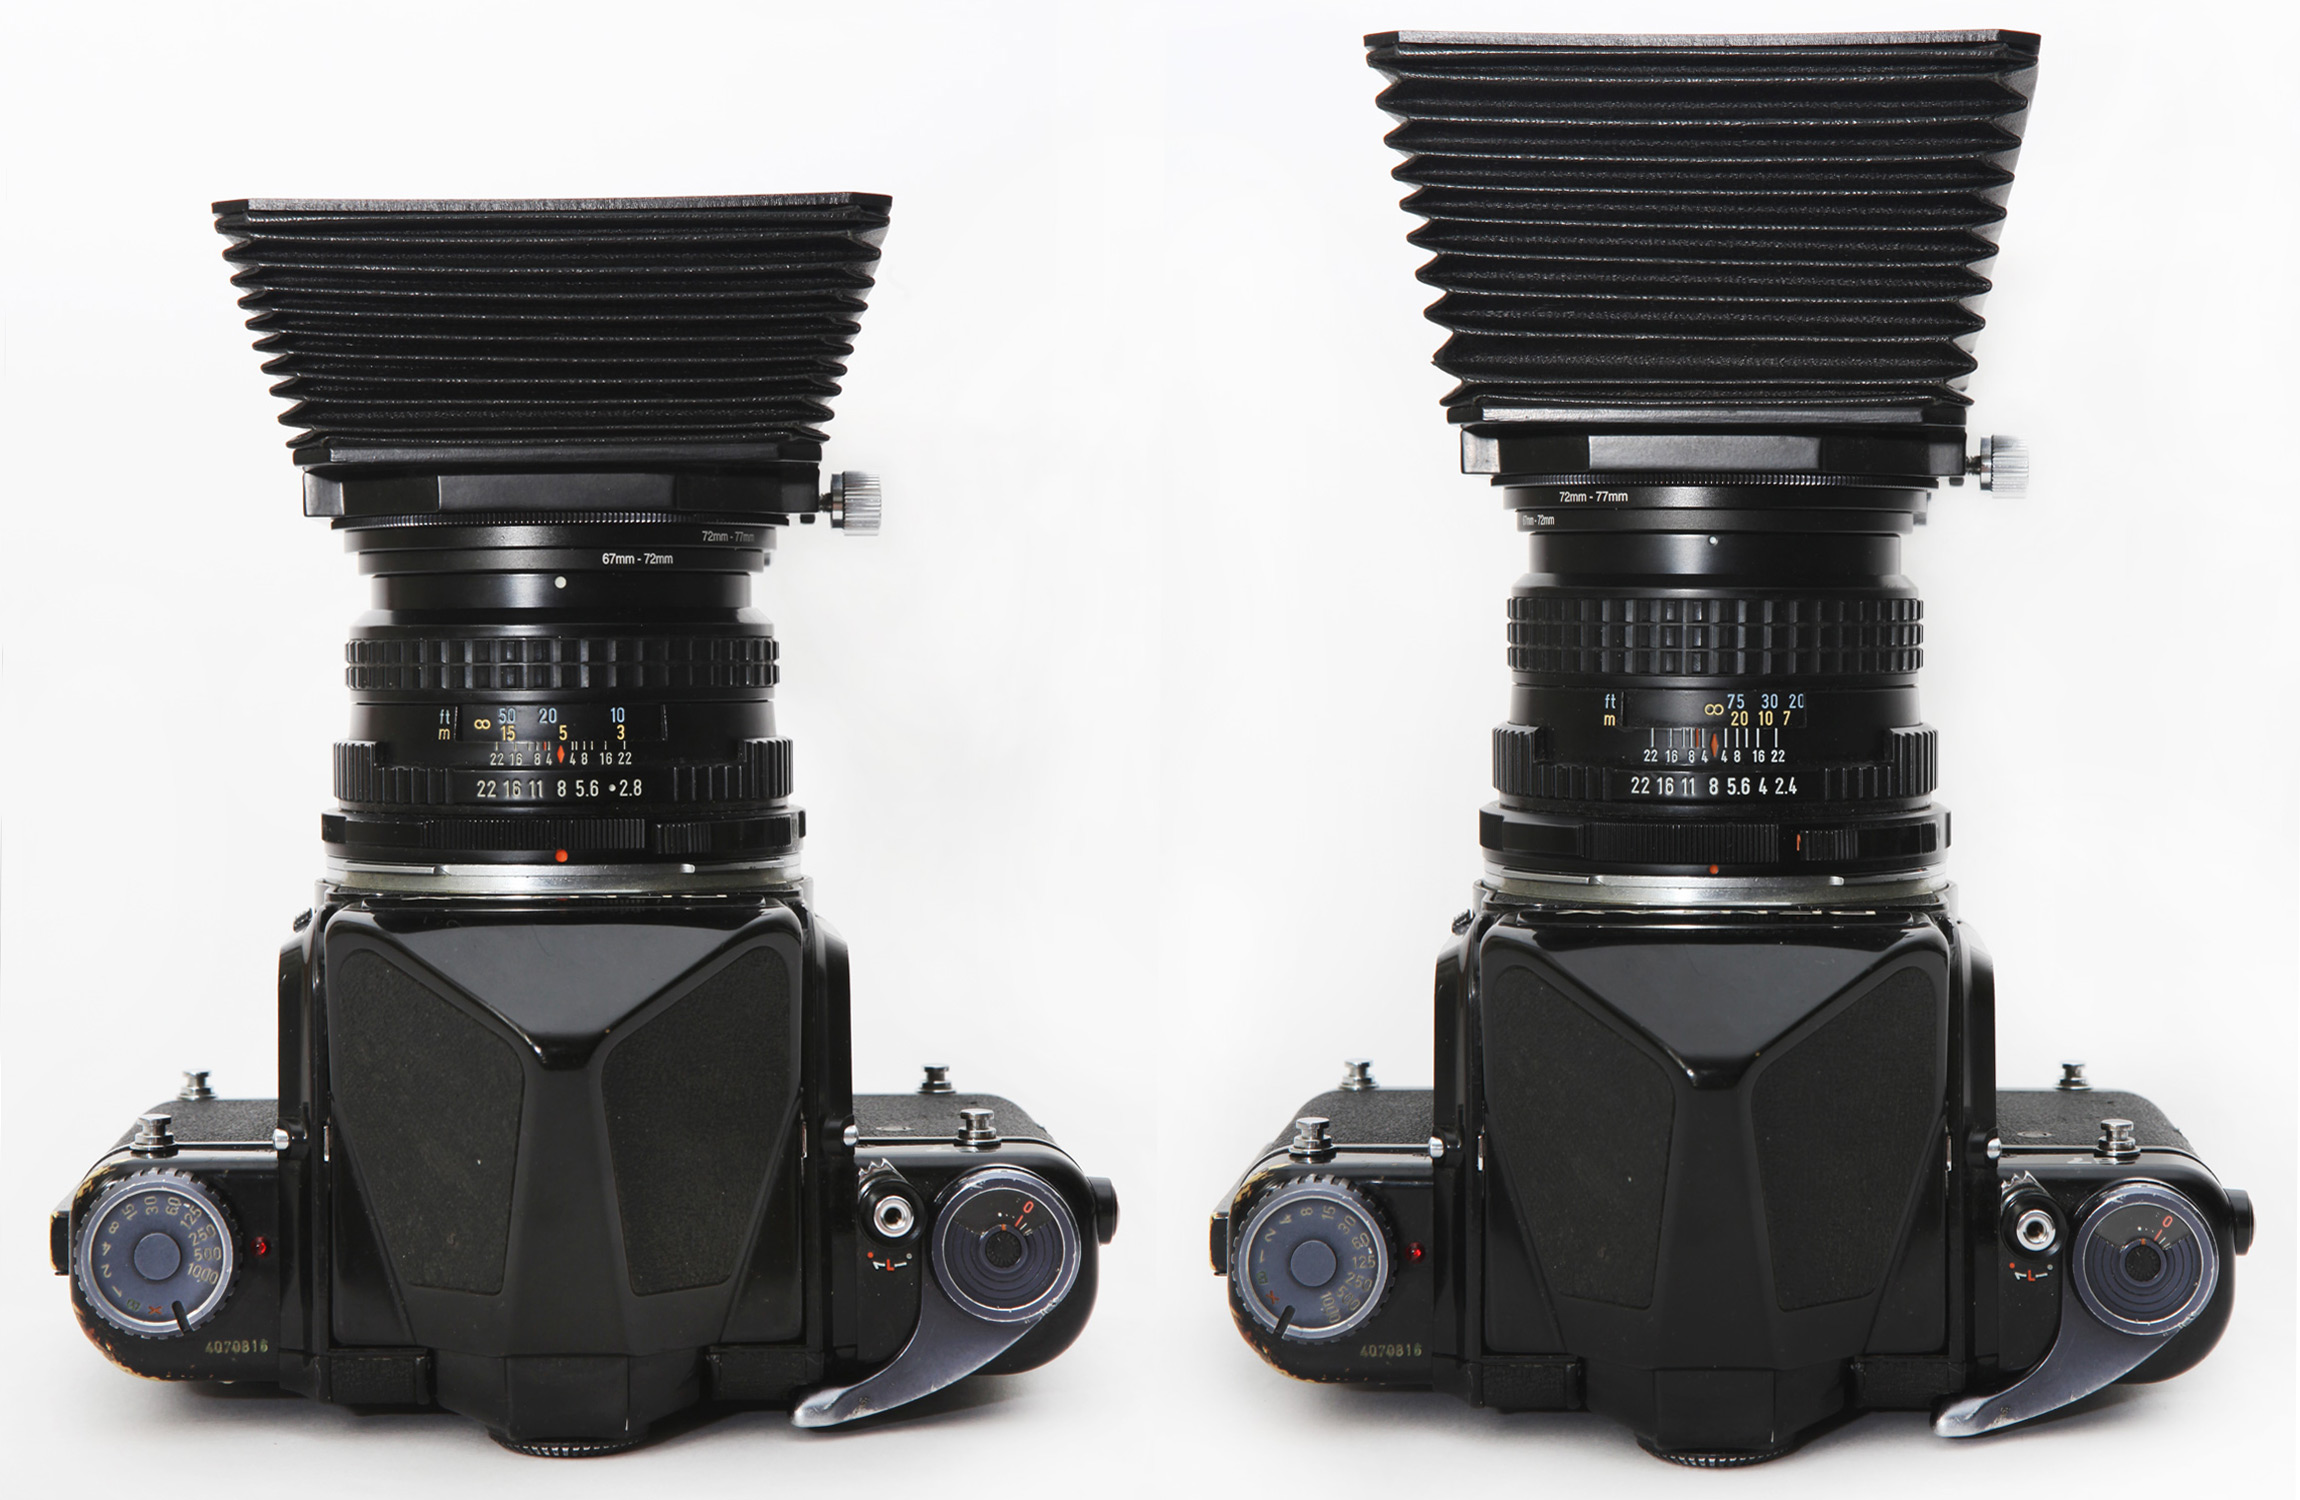 Mamiya RB67 and RZ67 G2 bellows hood in 90mm and 127mm positions mounted on 90mm F2.8 and 105mm F2.4